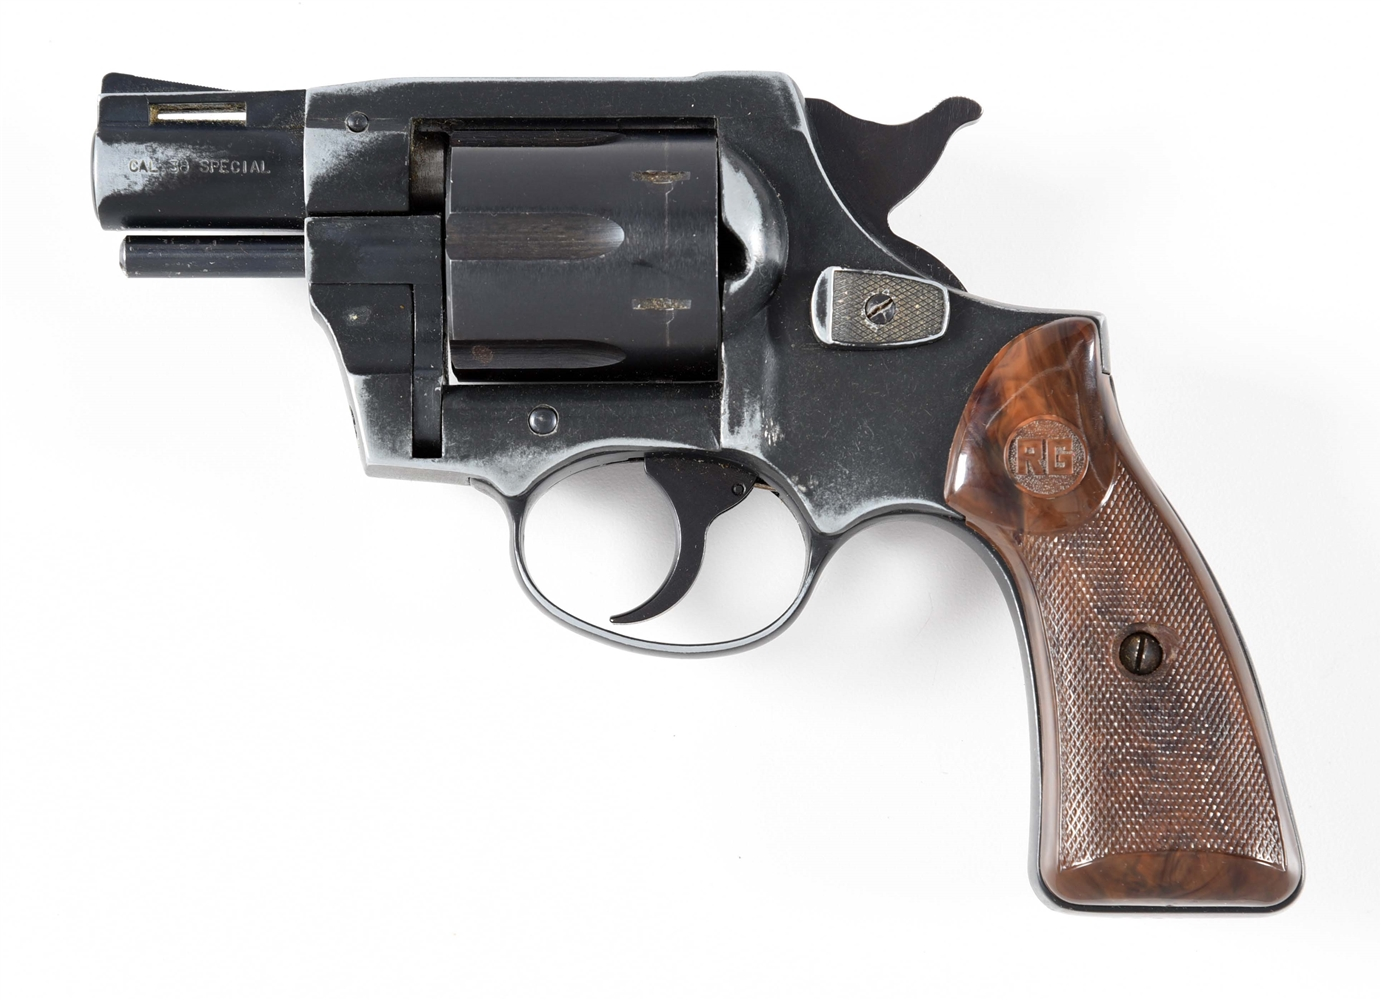 (M) ROEHM RG40 DOUBLE ACTION .38 REVOLVER.